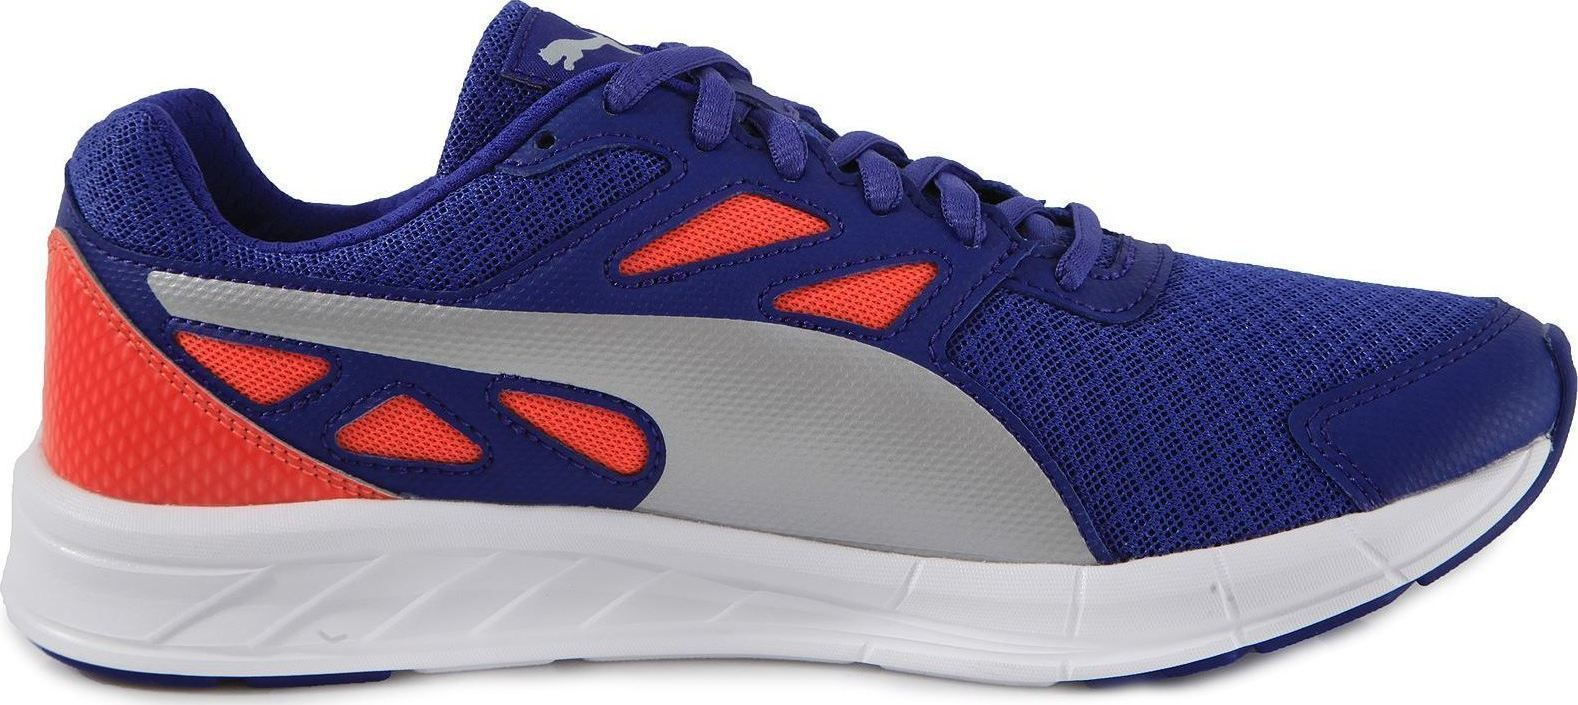 Scarpetta Puma Womans Driver Royal Blue-Silver-Red Blast